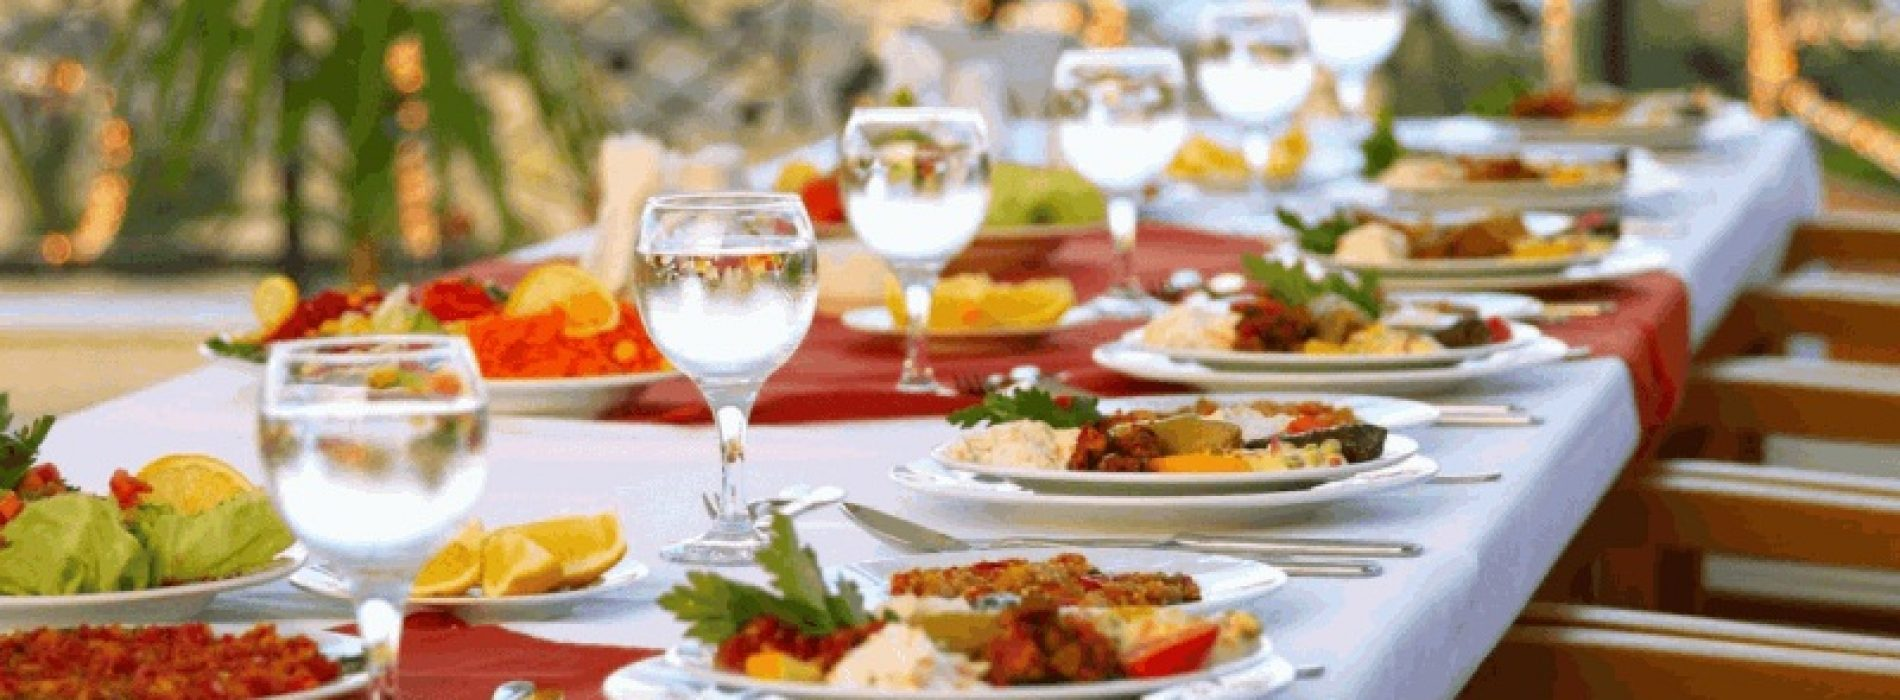 Things To Consider And Questions To Ask When Hiring Catering Services For An Event